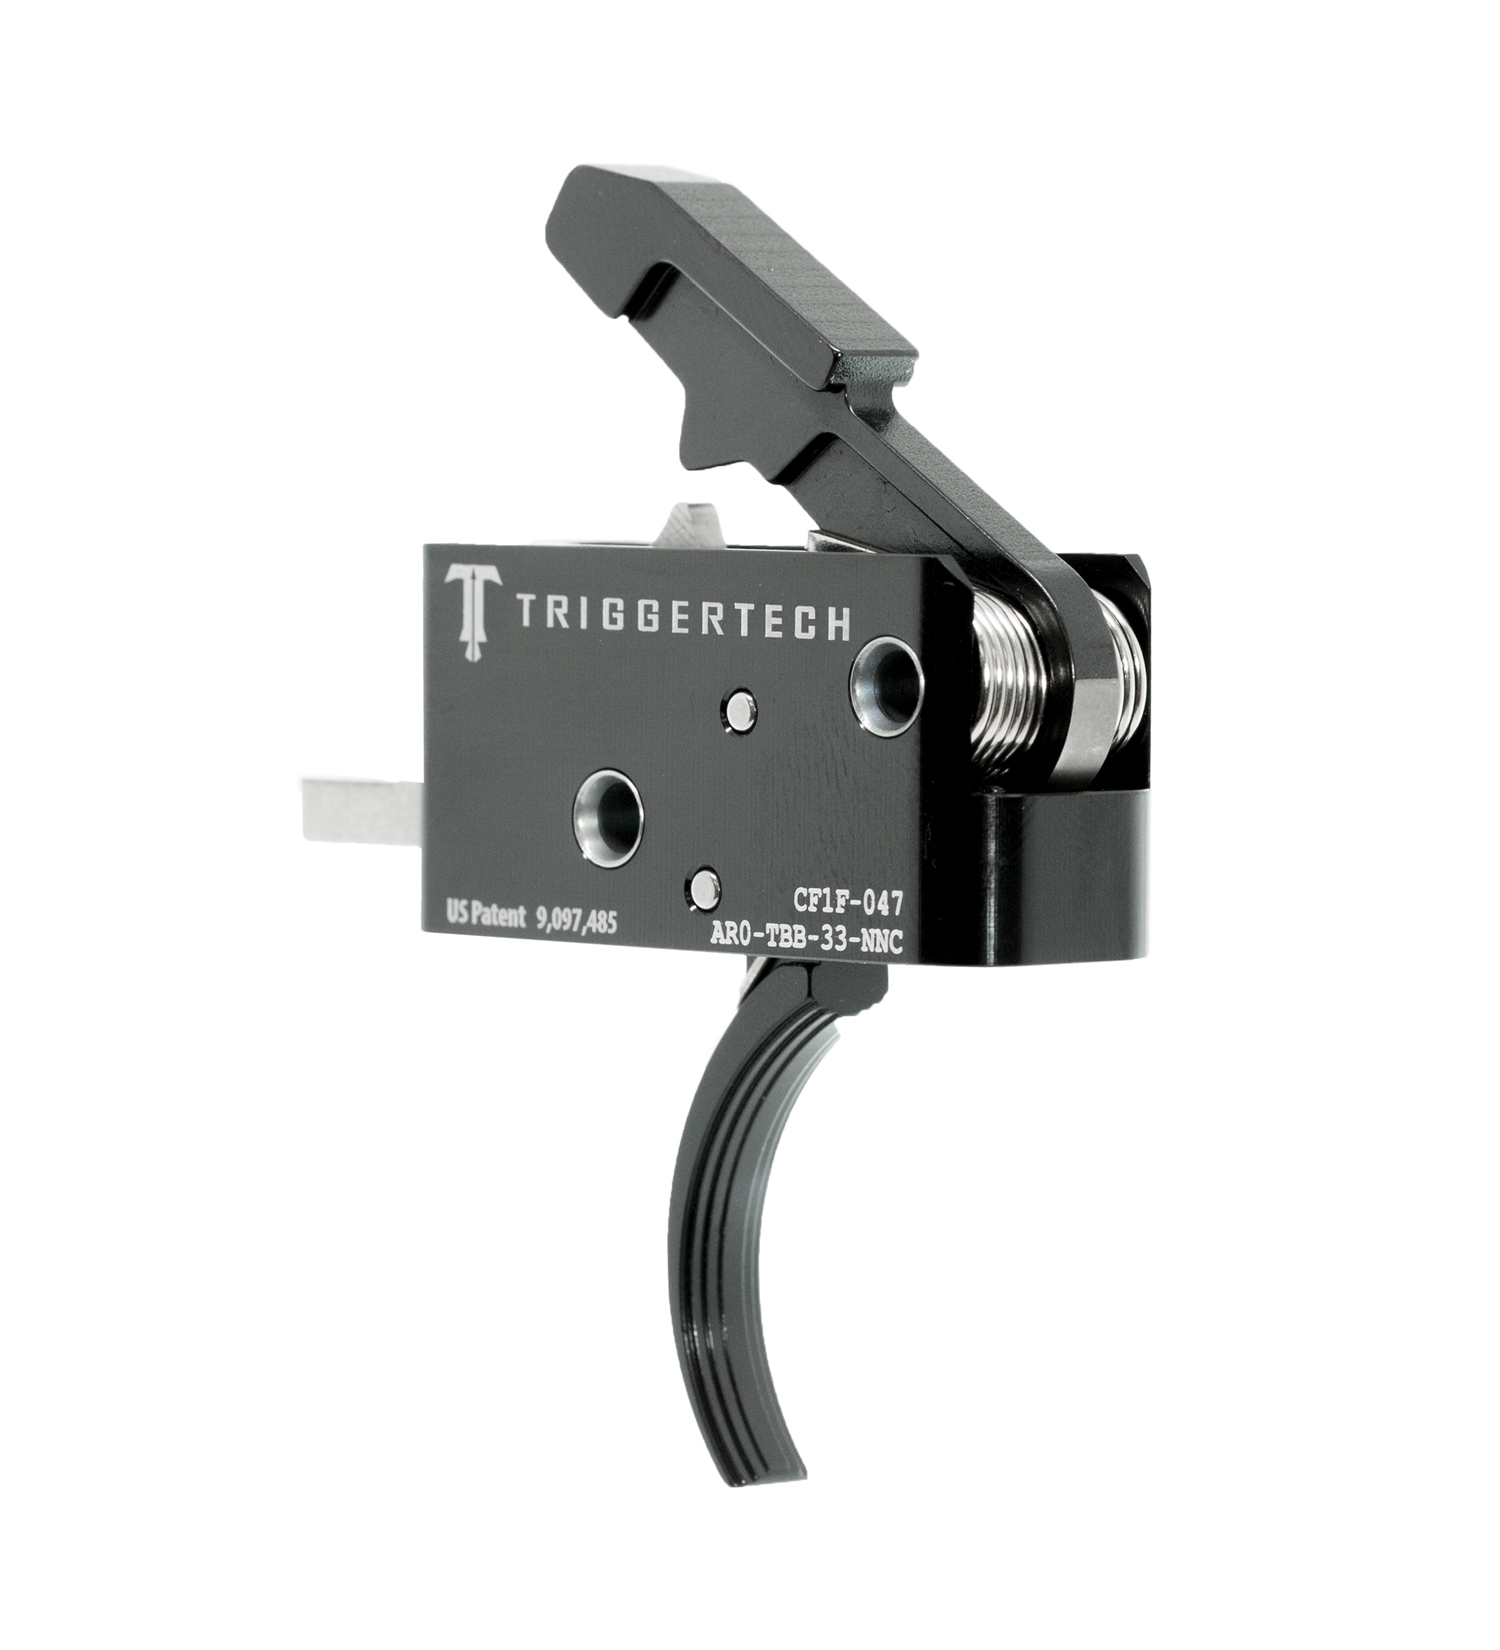 TriggerTech Competitive AR Trigger PVD Curved